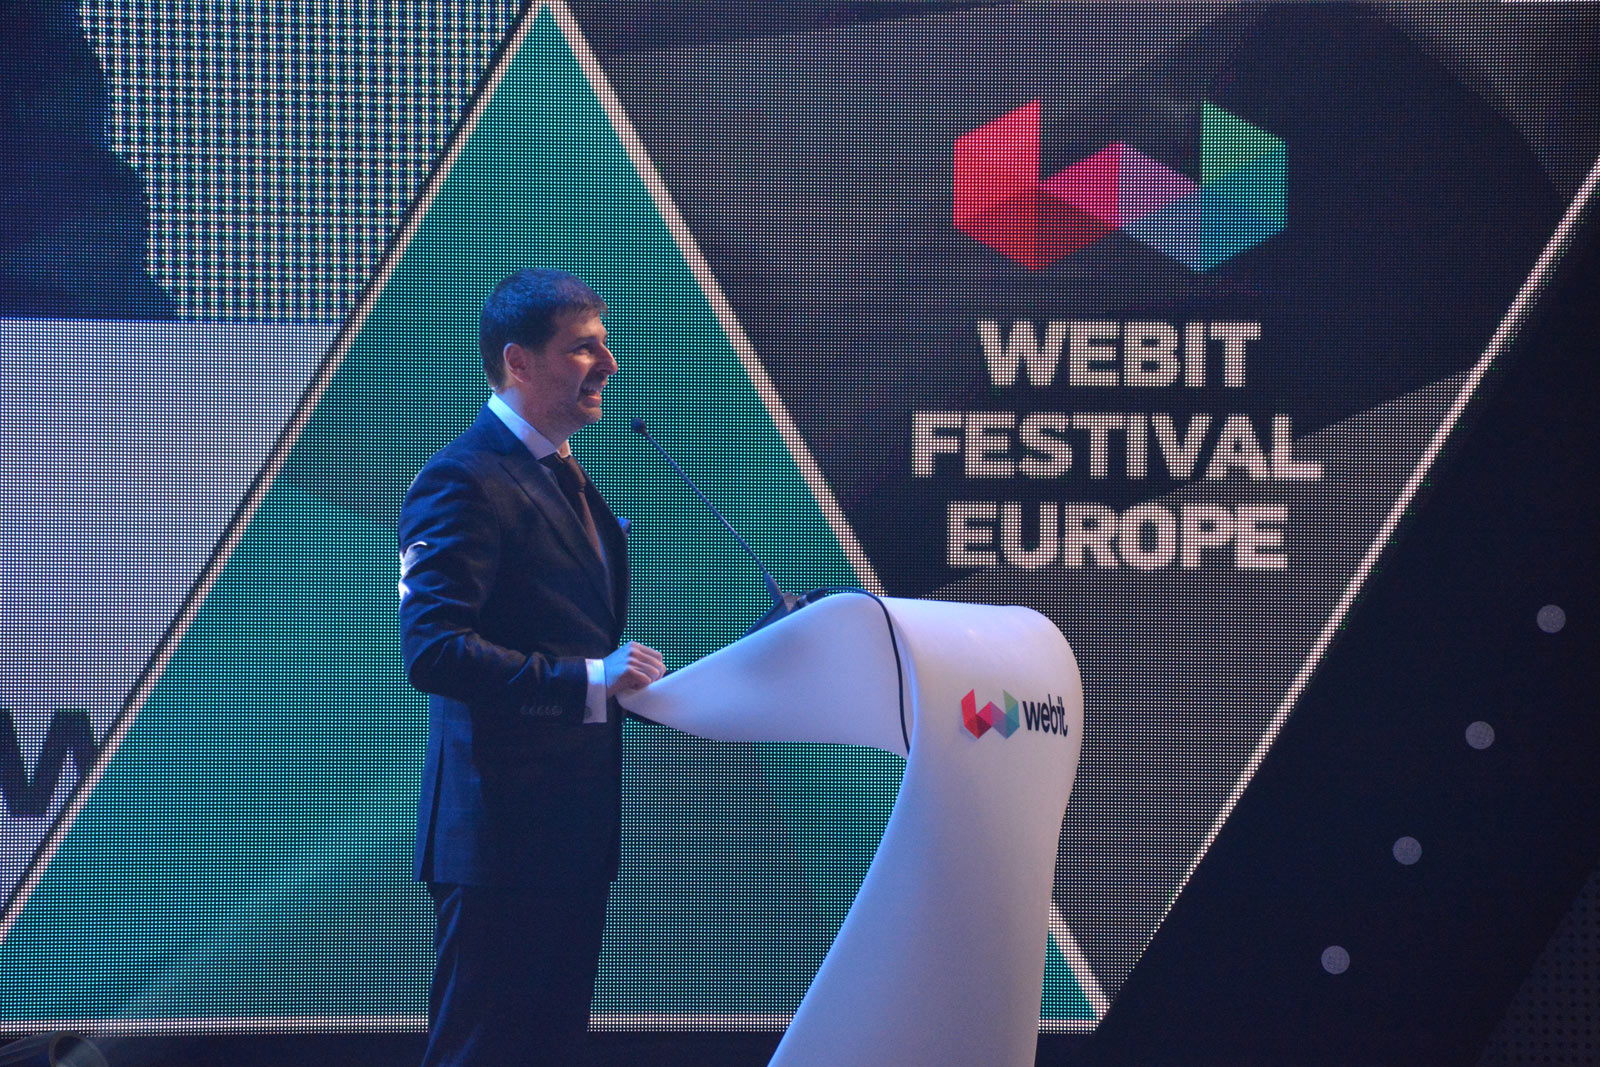 Speaking at WEBIT.FESTIVAL 2017 Official Opening